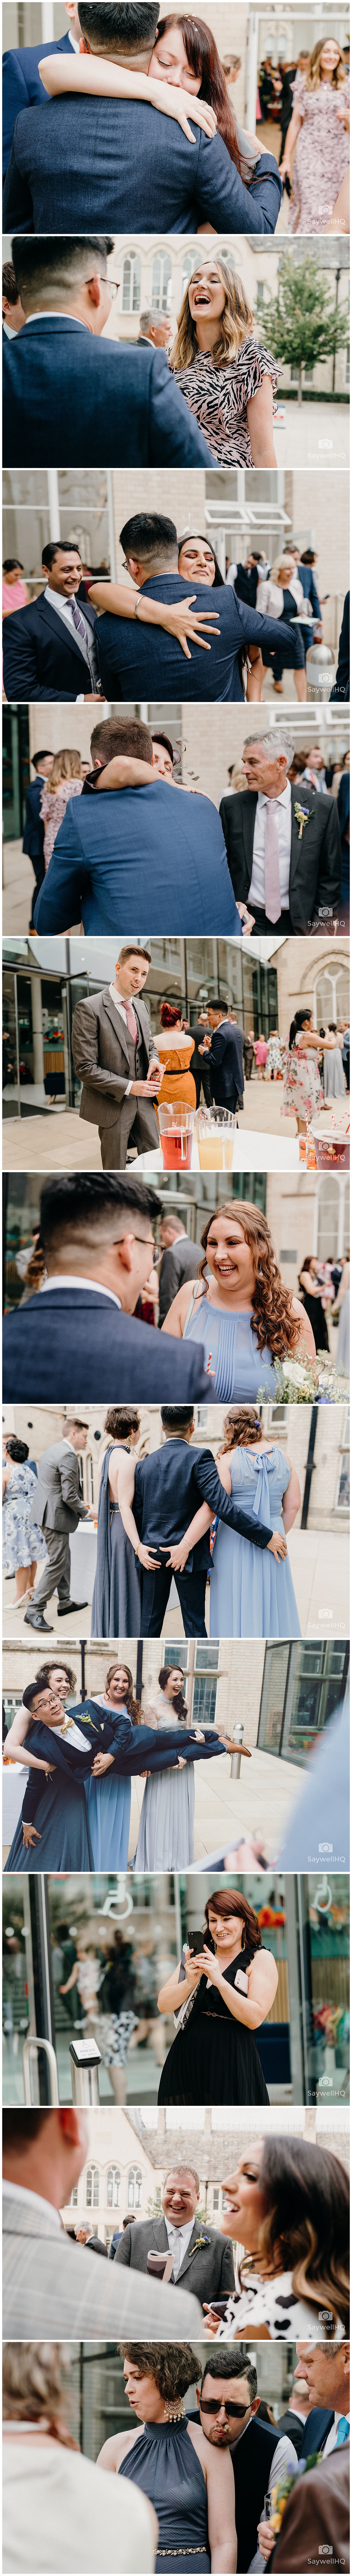 Wedding Photography at the Arkwright Rooms Nottingham